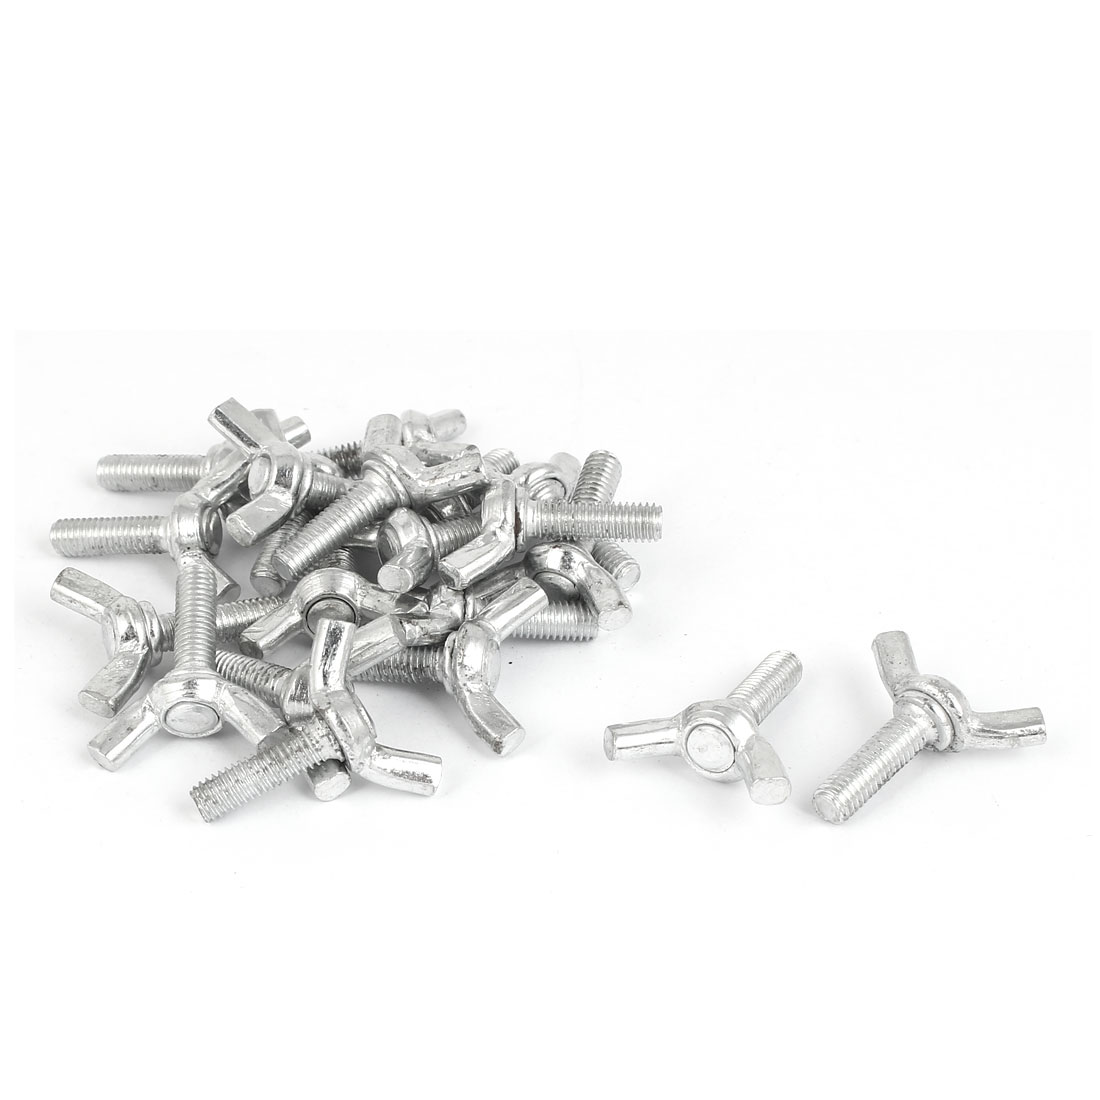 M5x16mm Thread Carbon Steel Wing Bolt Butterfly Screws Silver Tone 20pcs